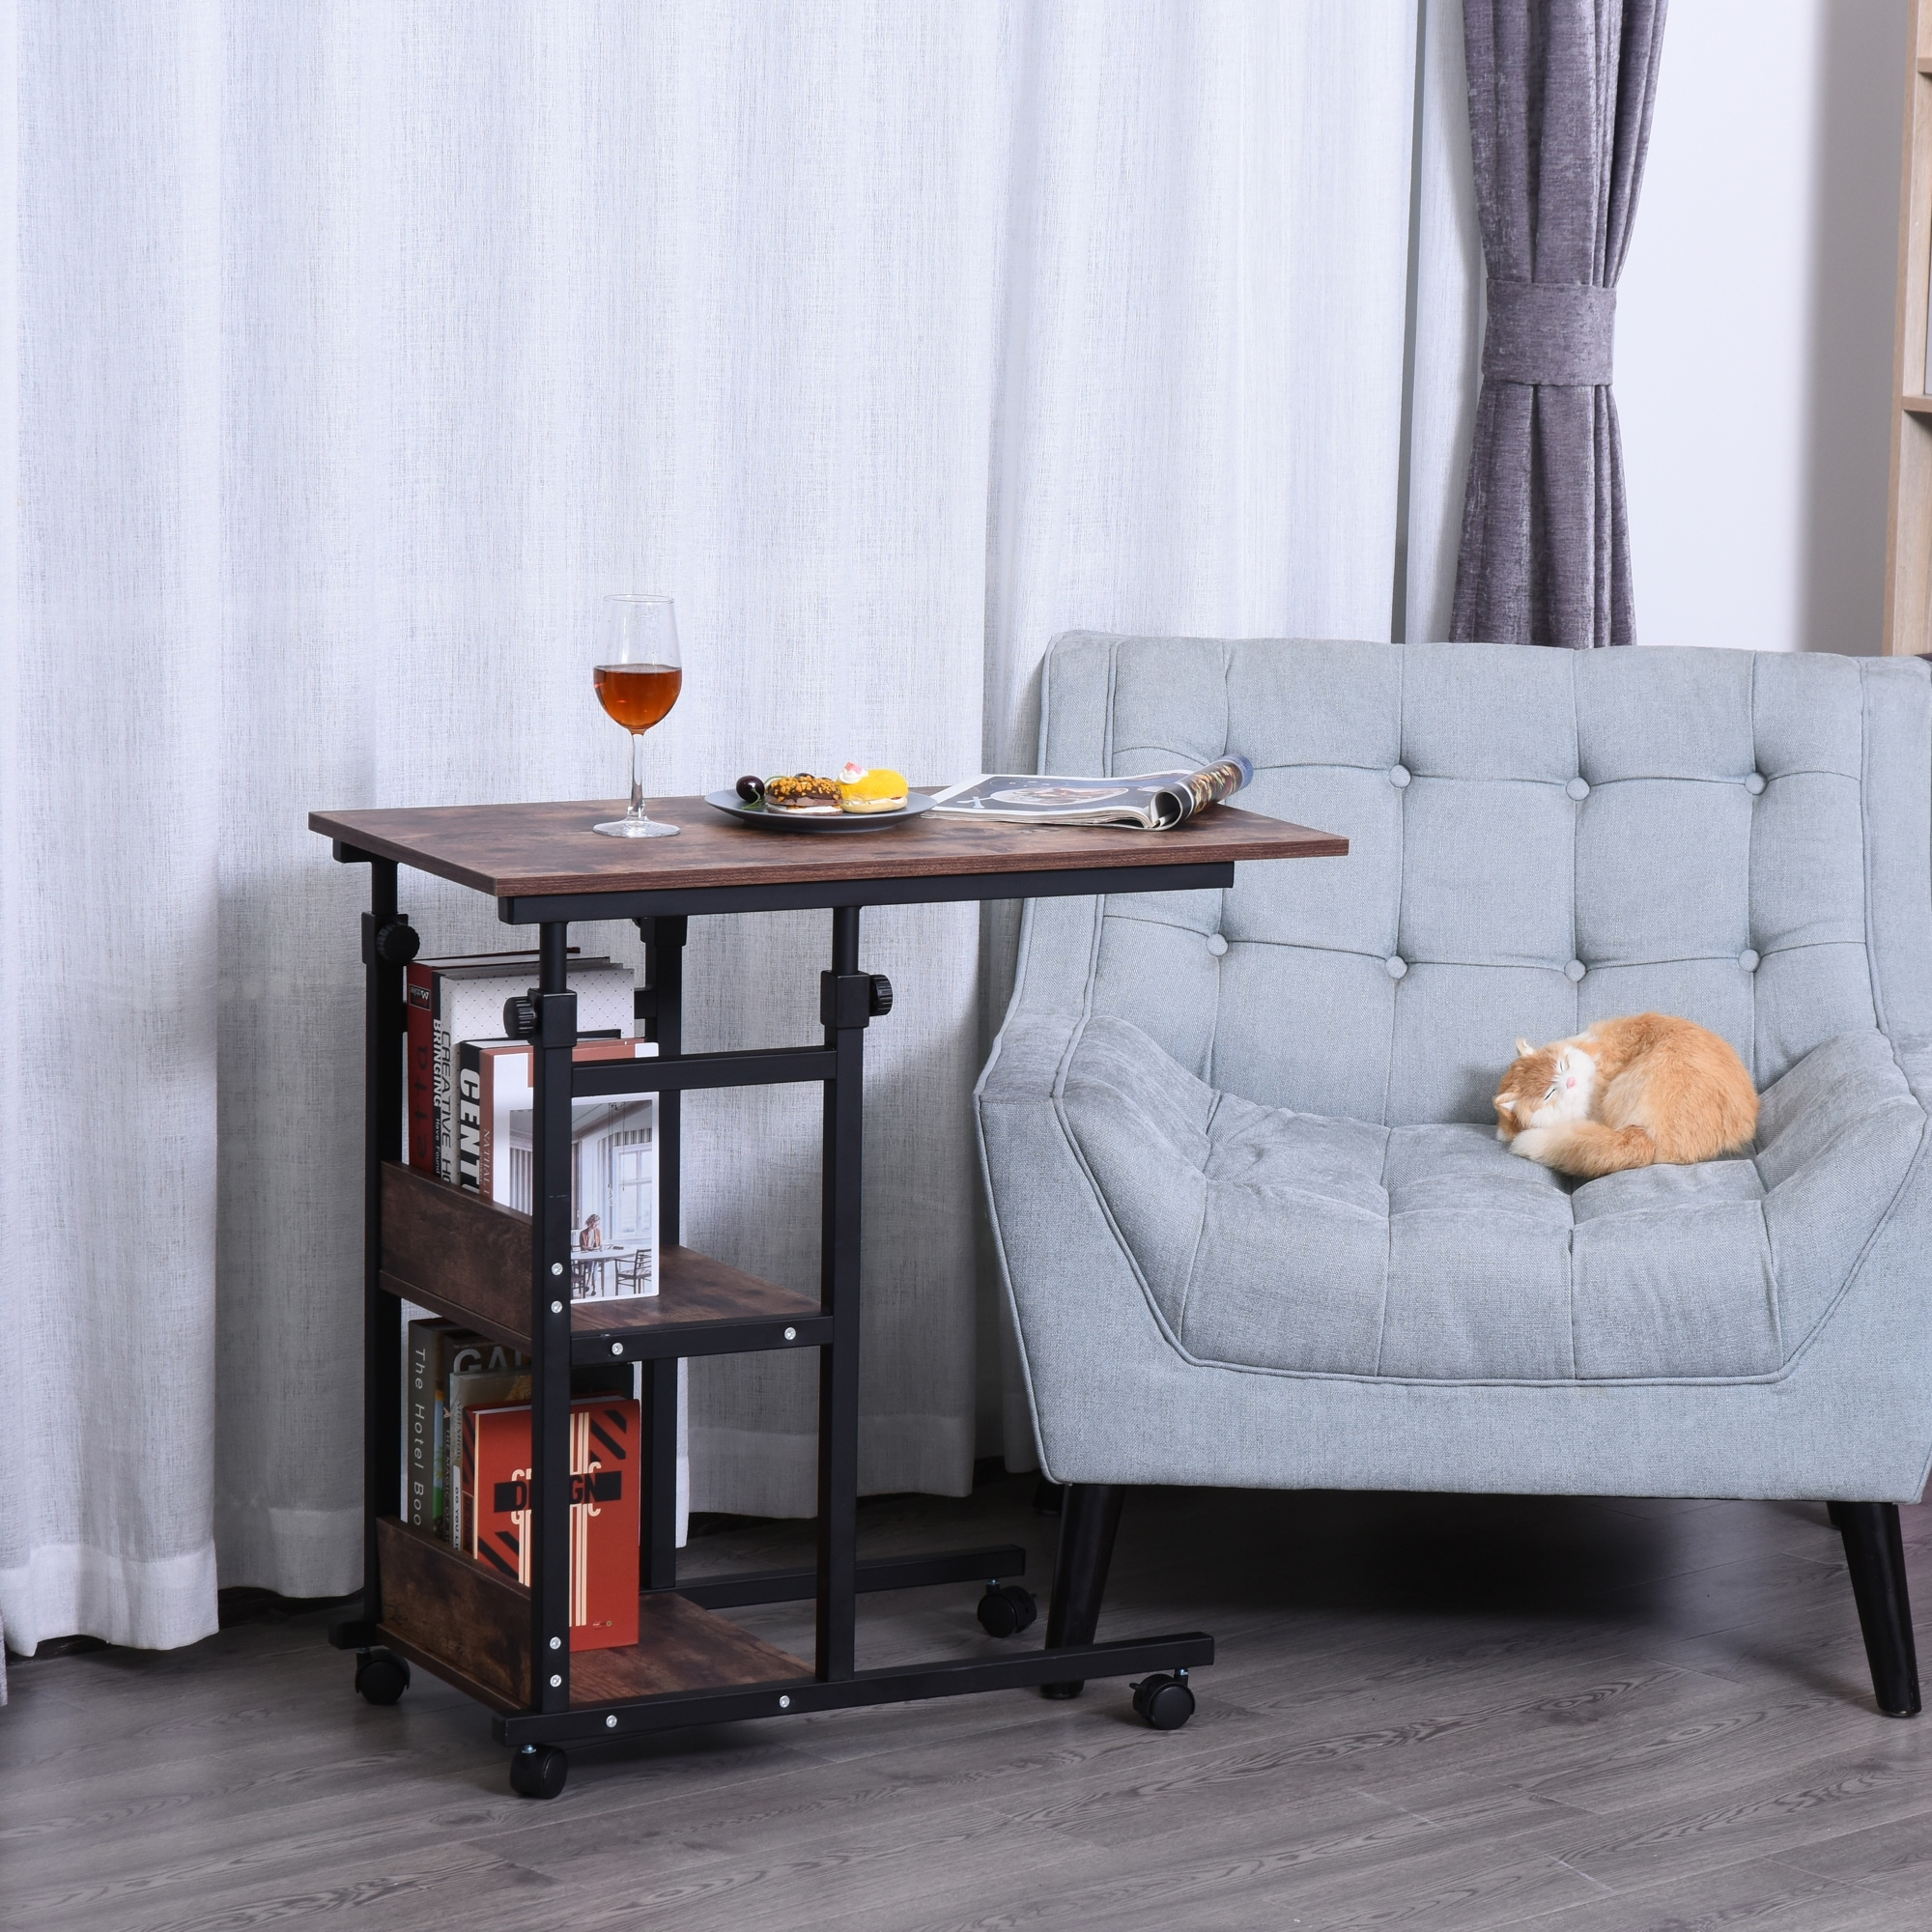 Picture of: Homcom Industrial C Shaped Mobile Rolling Sofa Side Table With 3 Tier Storage Shelving Adjustable Height Wheels Overstock 31660808